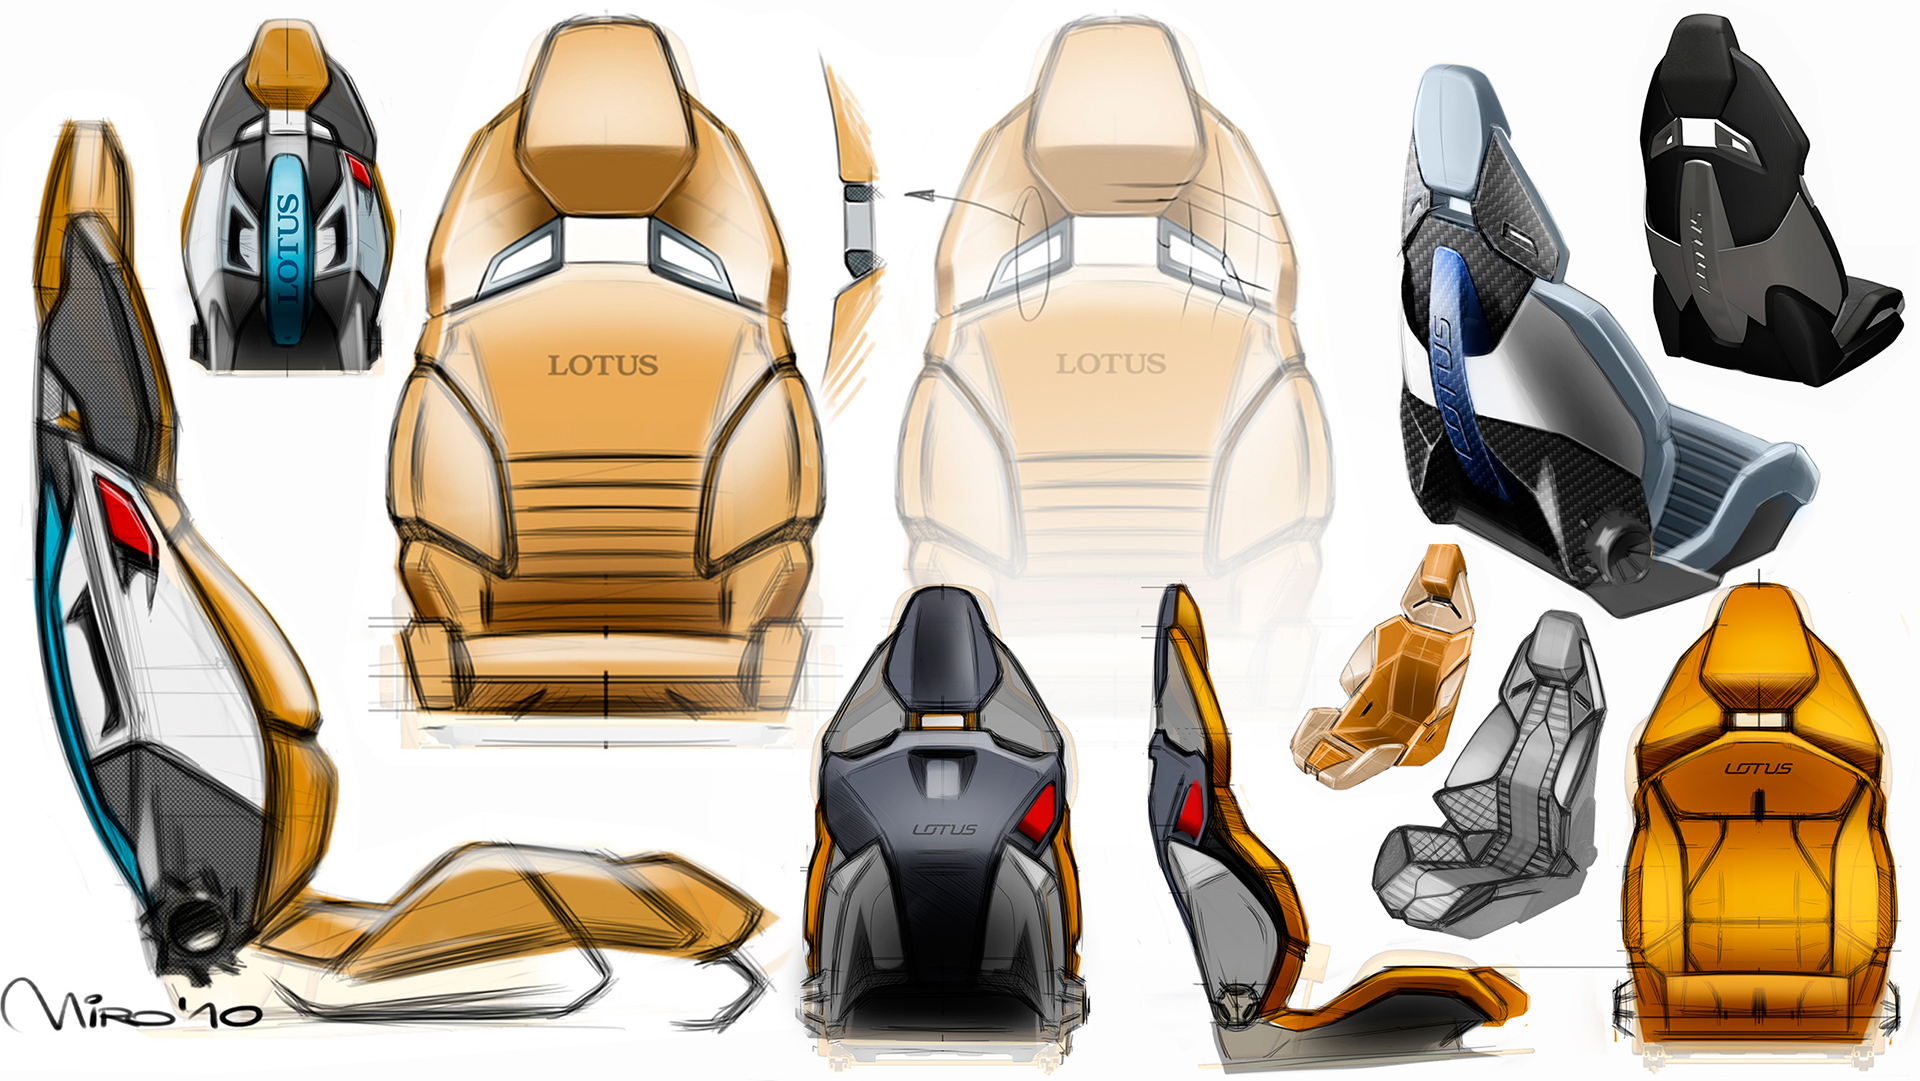 Miroslav's Interior Design sketches of the Lotus Esprit Concept Car Seats